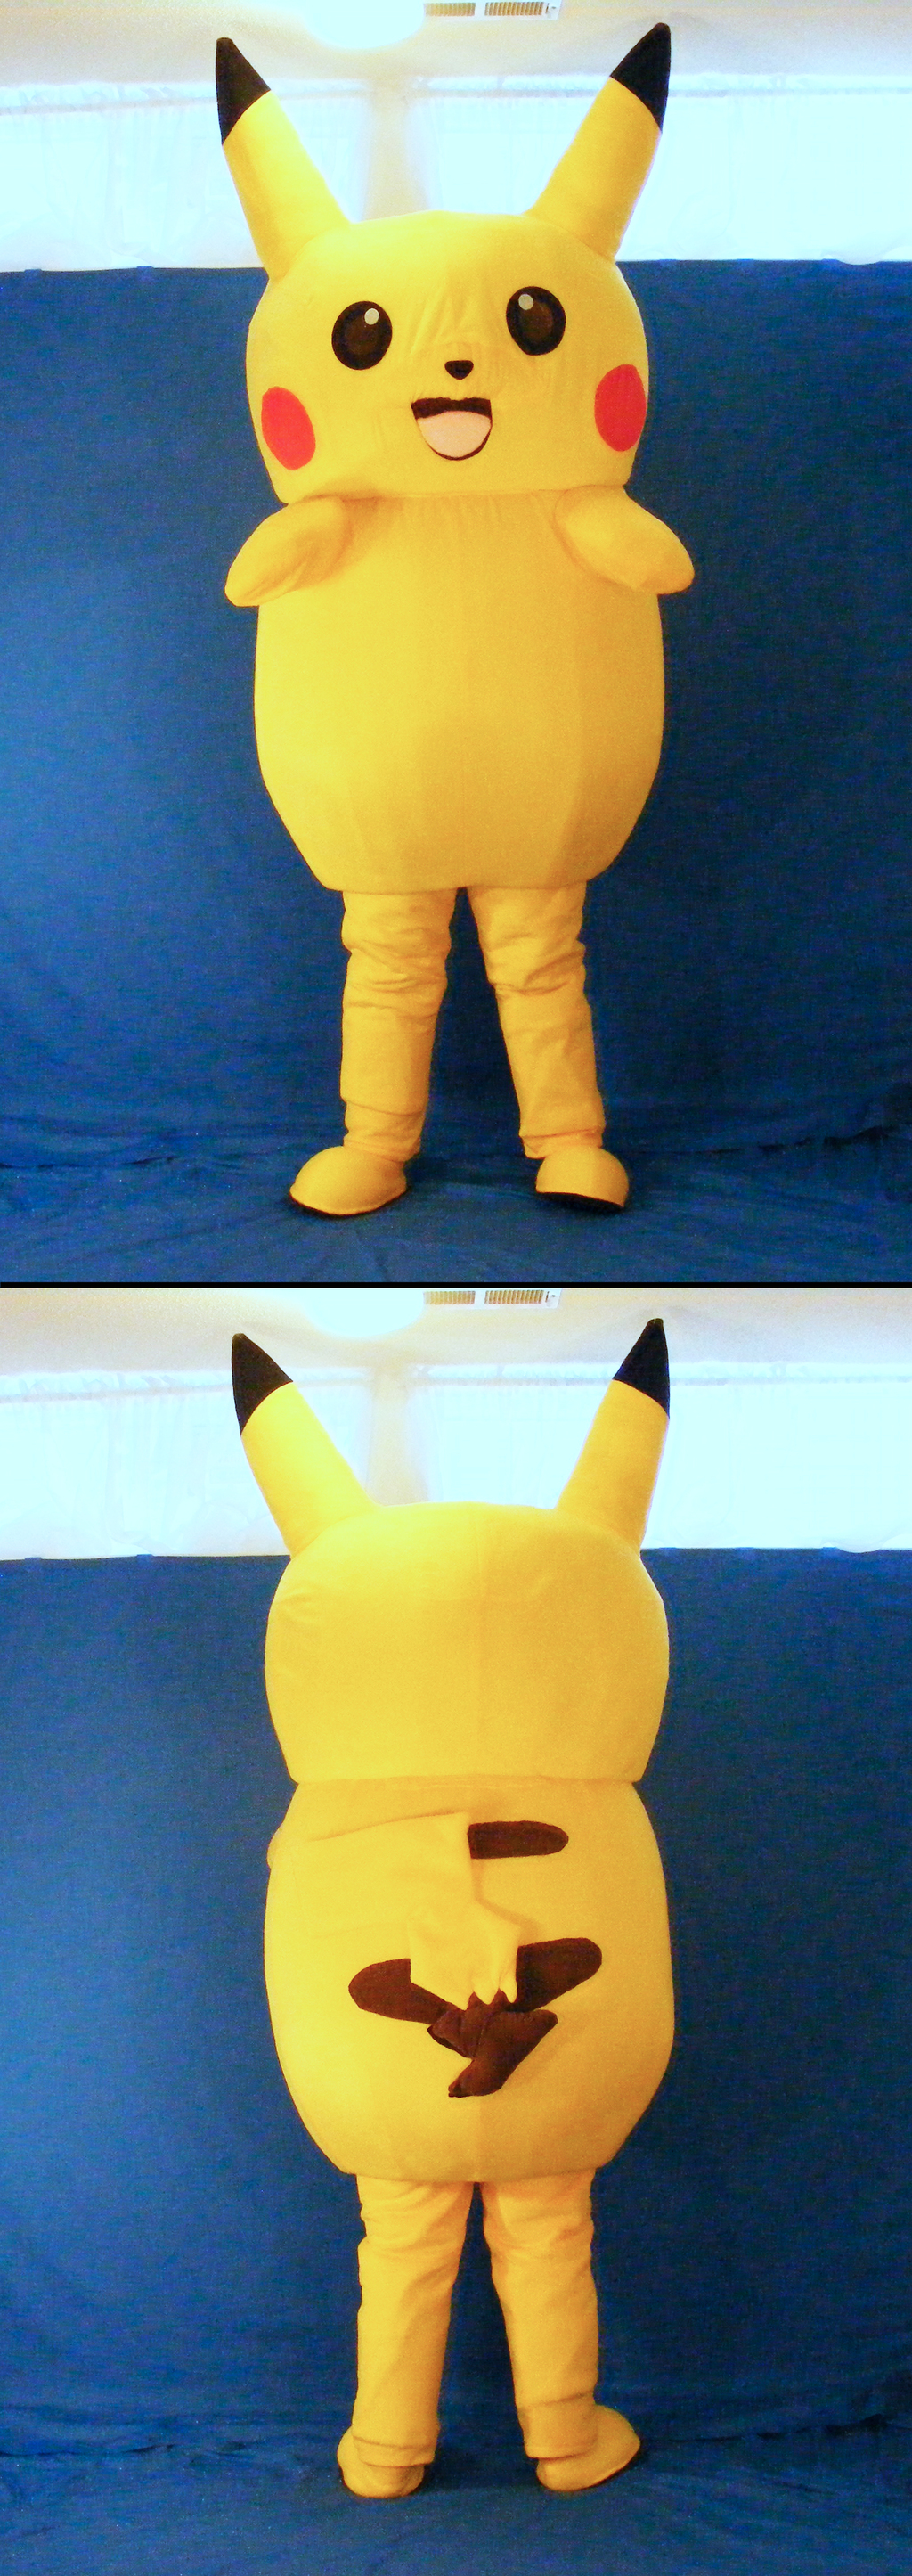 Pikachu Mascot Suit (Front And Back)